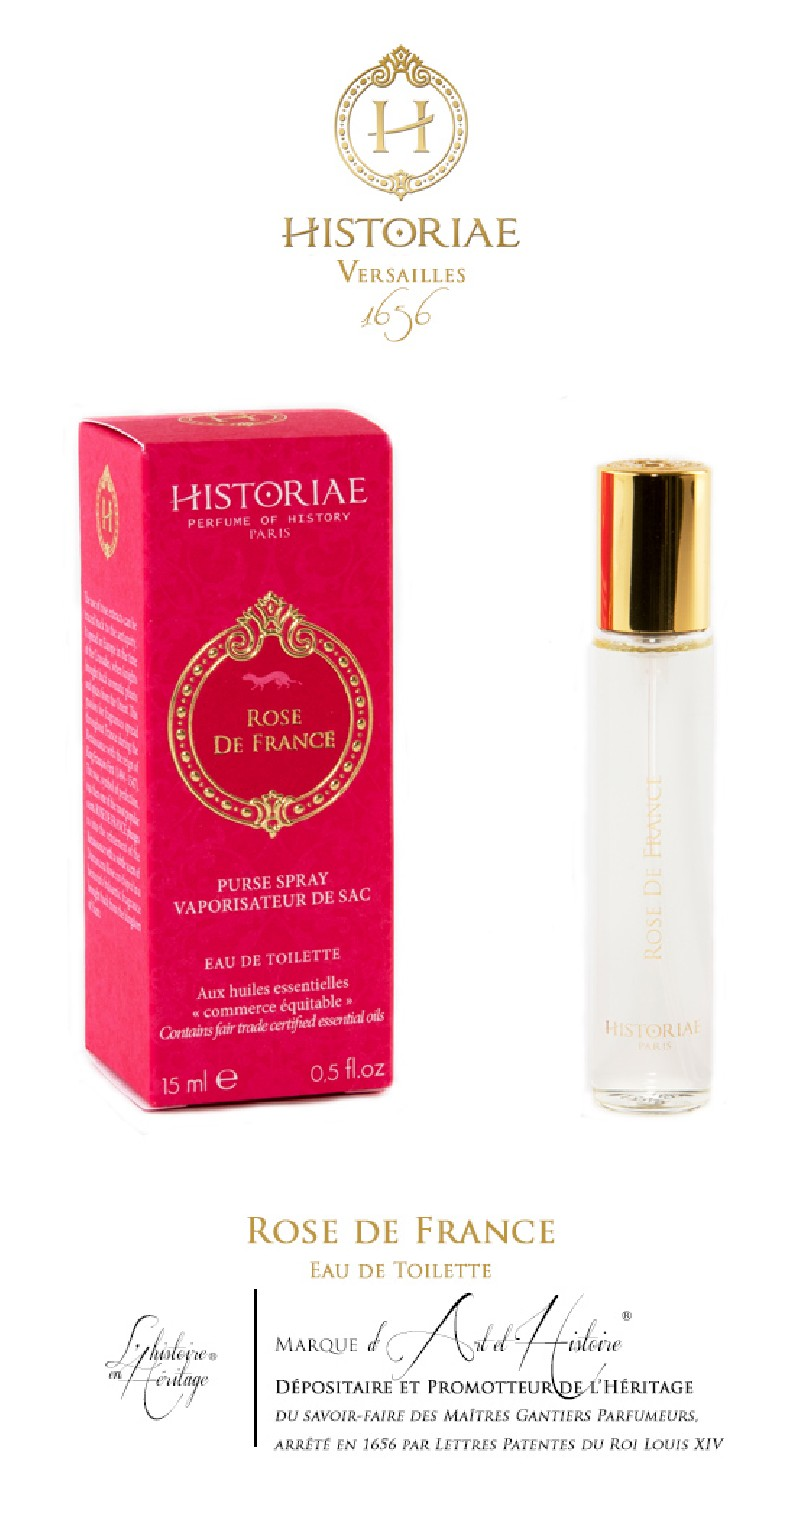 Rose de France - Eau de toilette